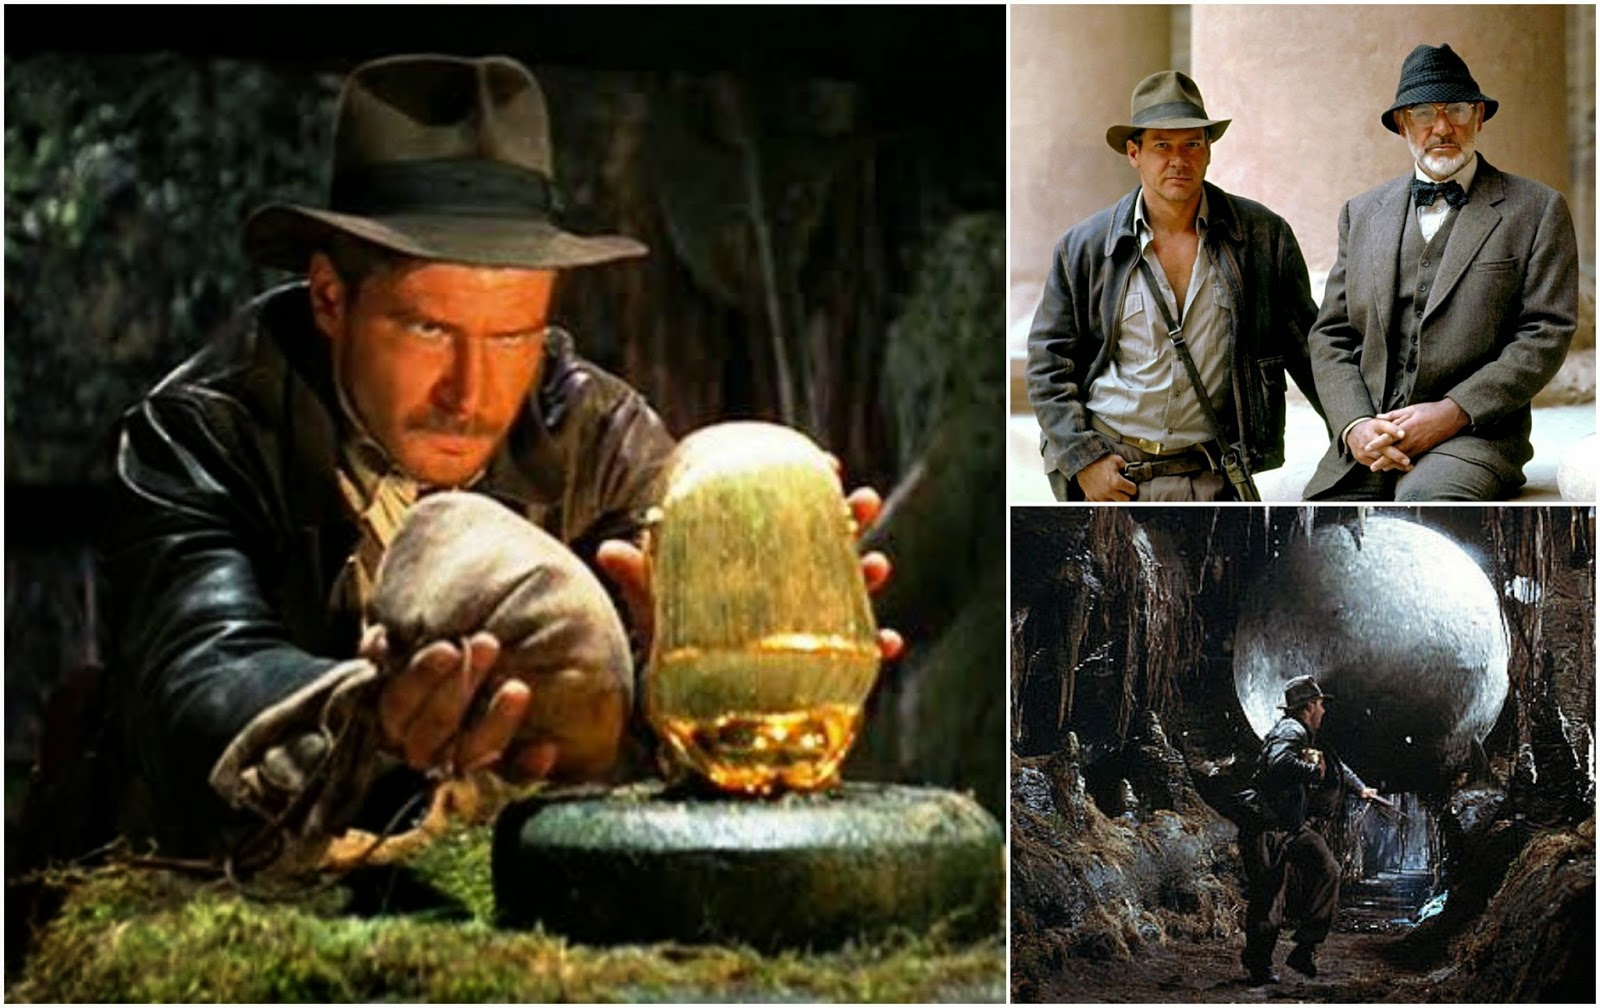 Escenas de Indiana Jones #sofapelimanta